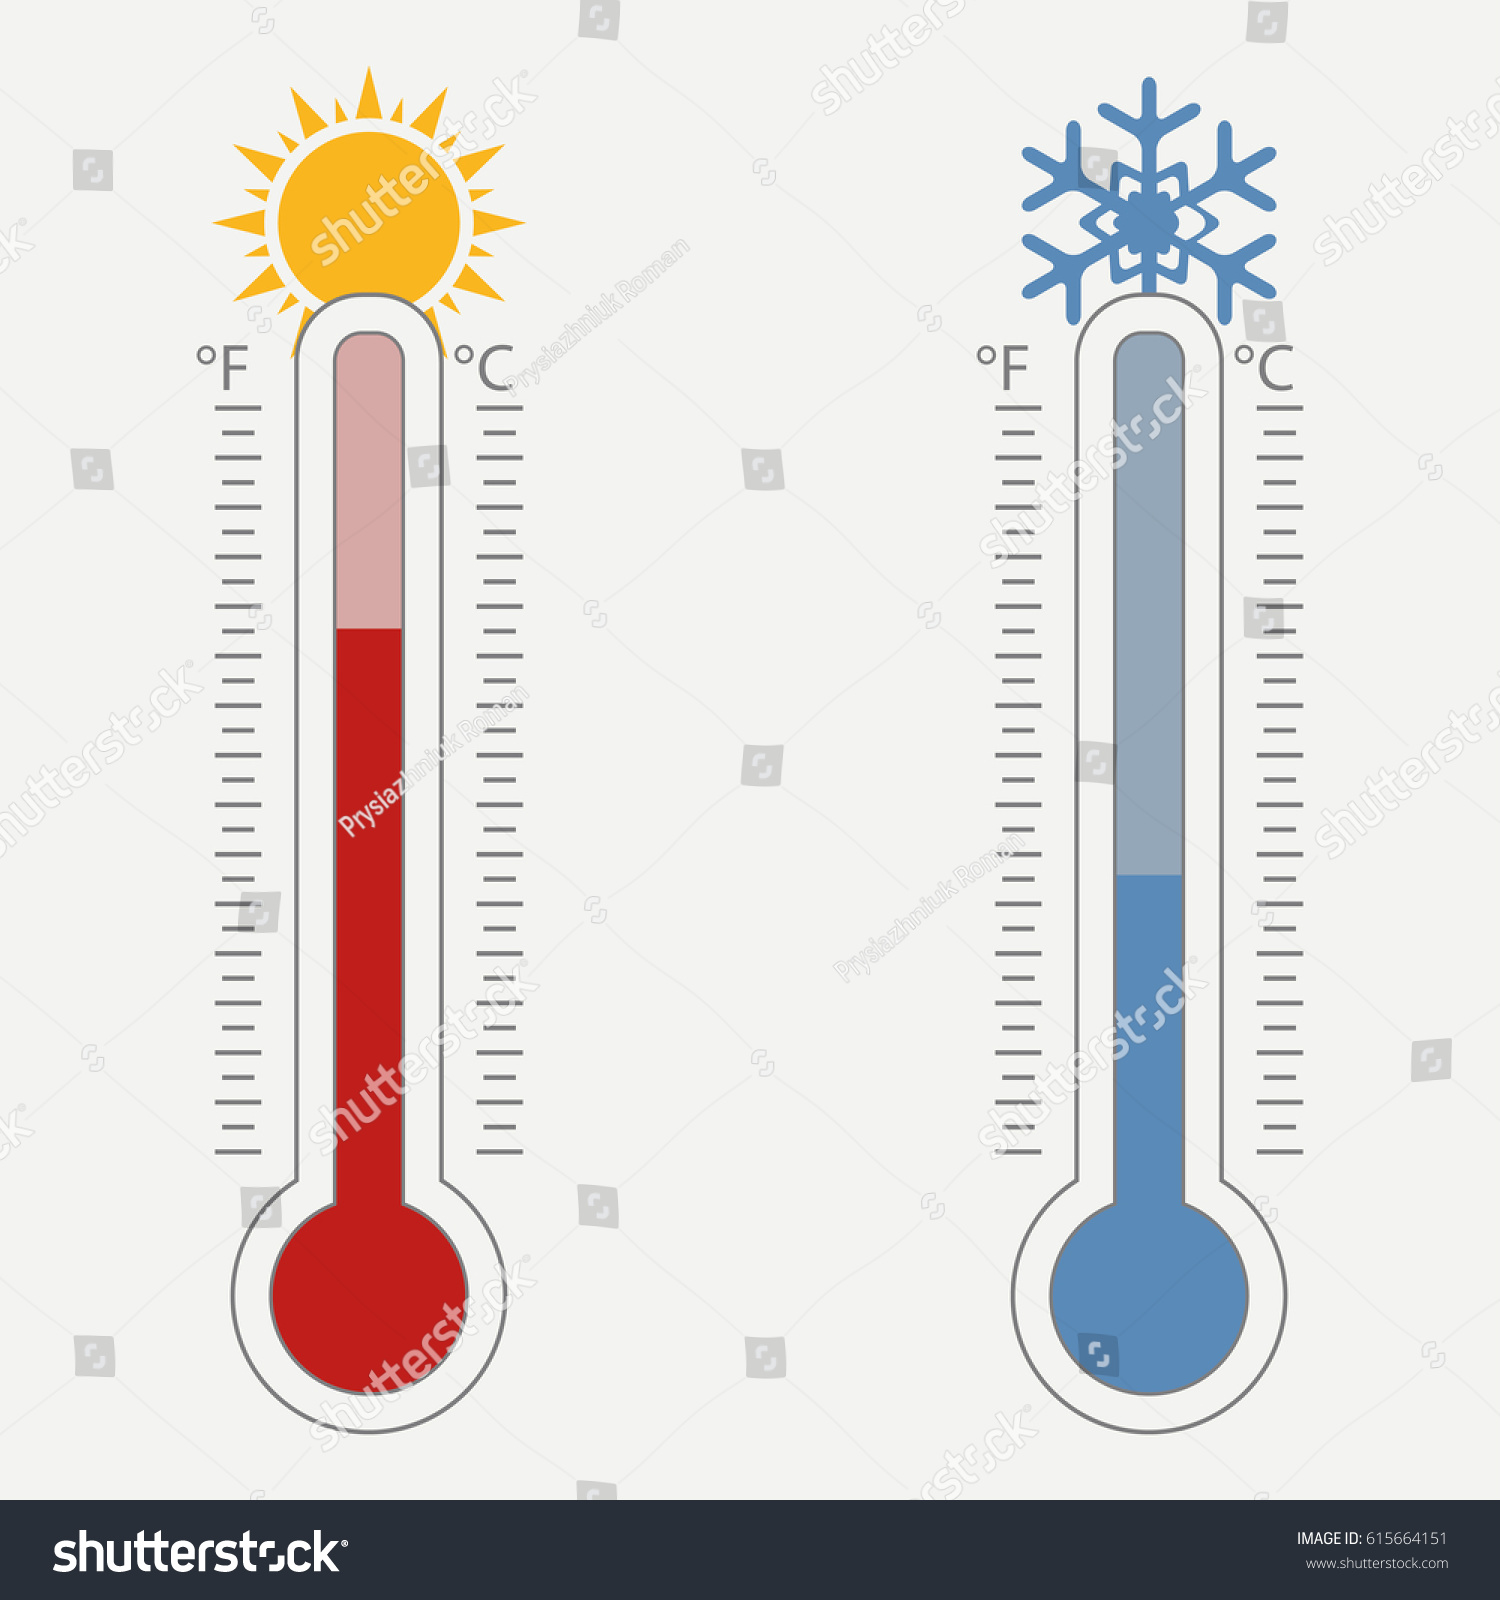 meteorological thermometer temperature scale celsius fahrenheit